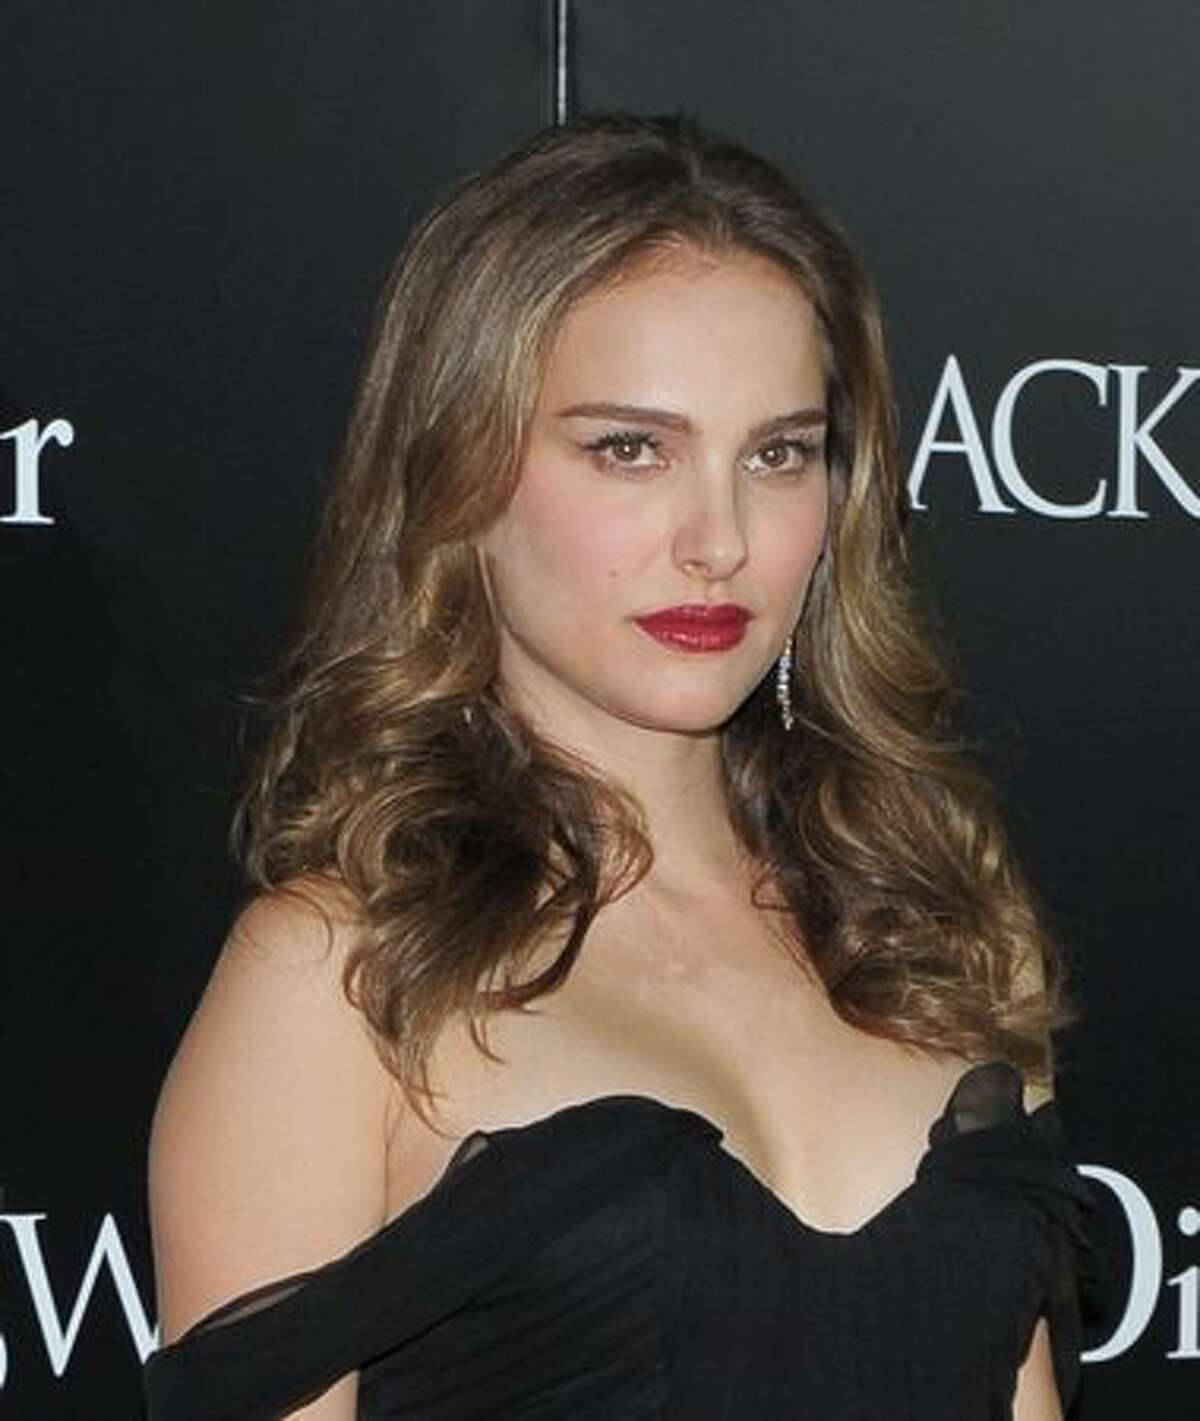 Actress Natalie Portman attends the New York premiere of